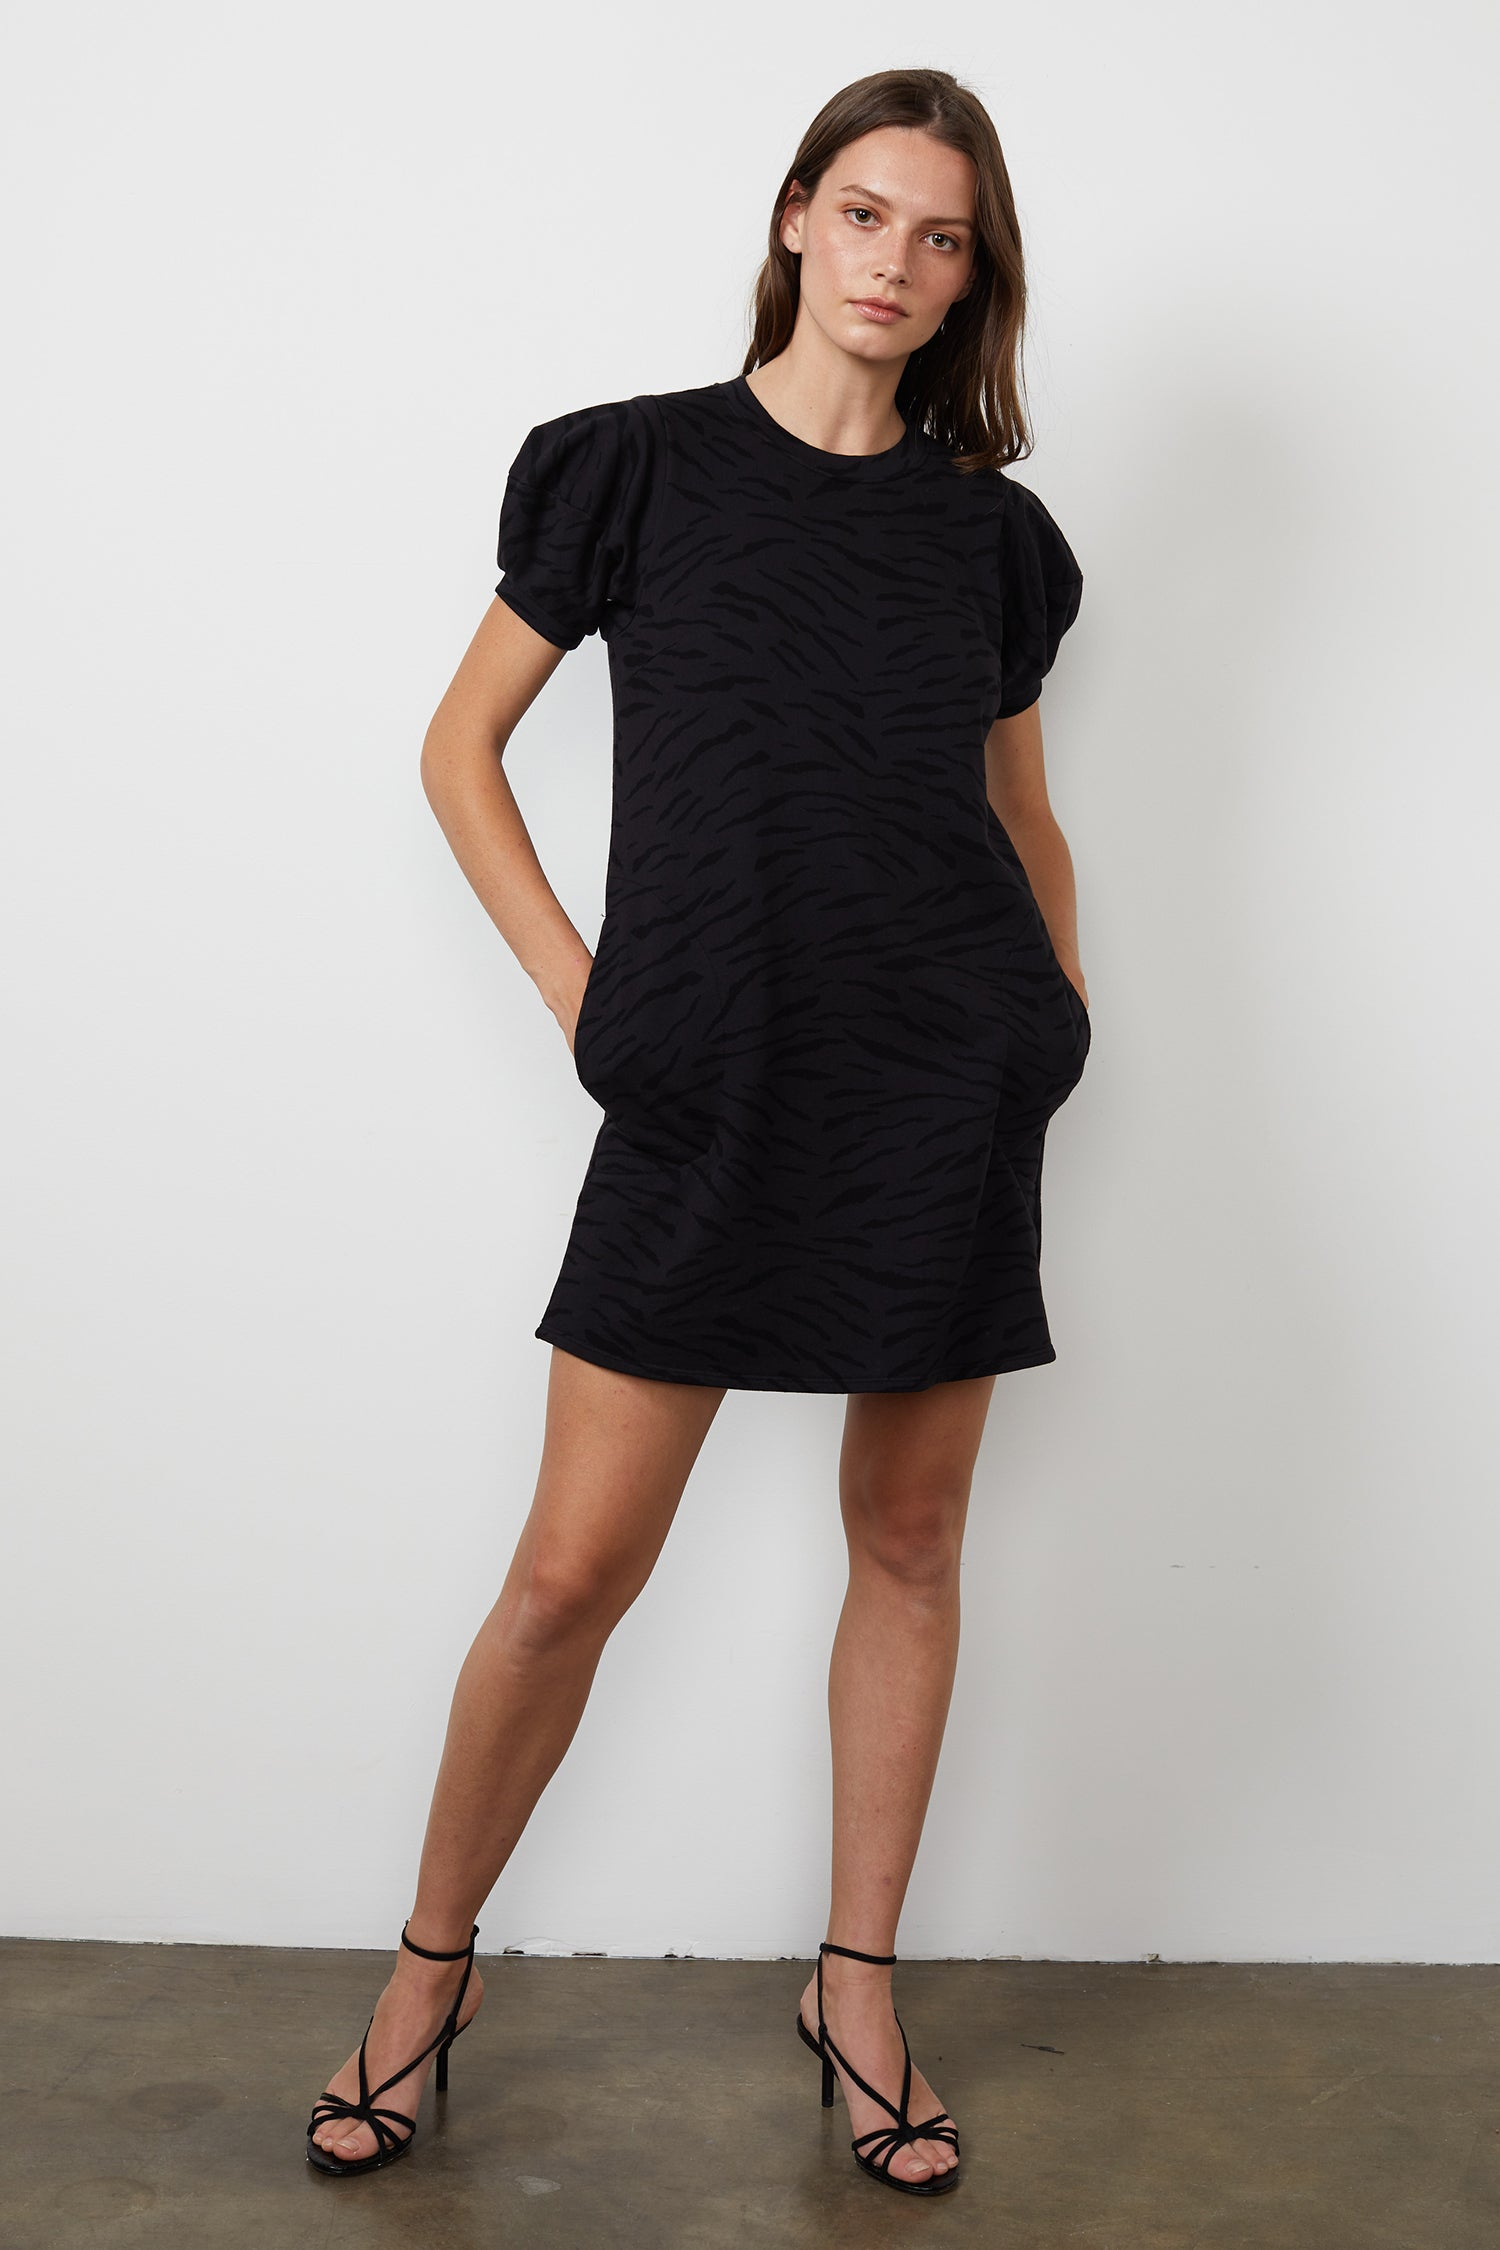 PRIMA ZEBRA FLEECE PRINTED DRESS IN EXHAUST